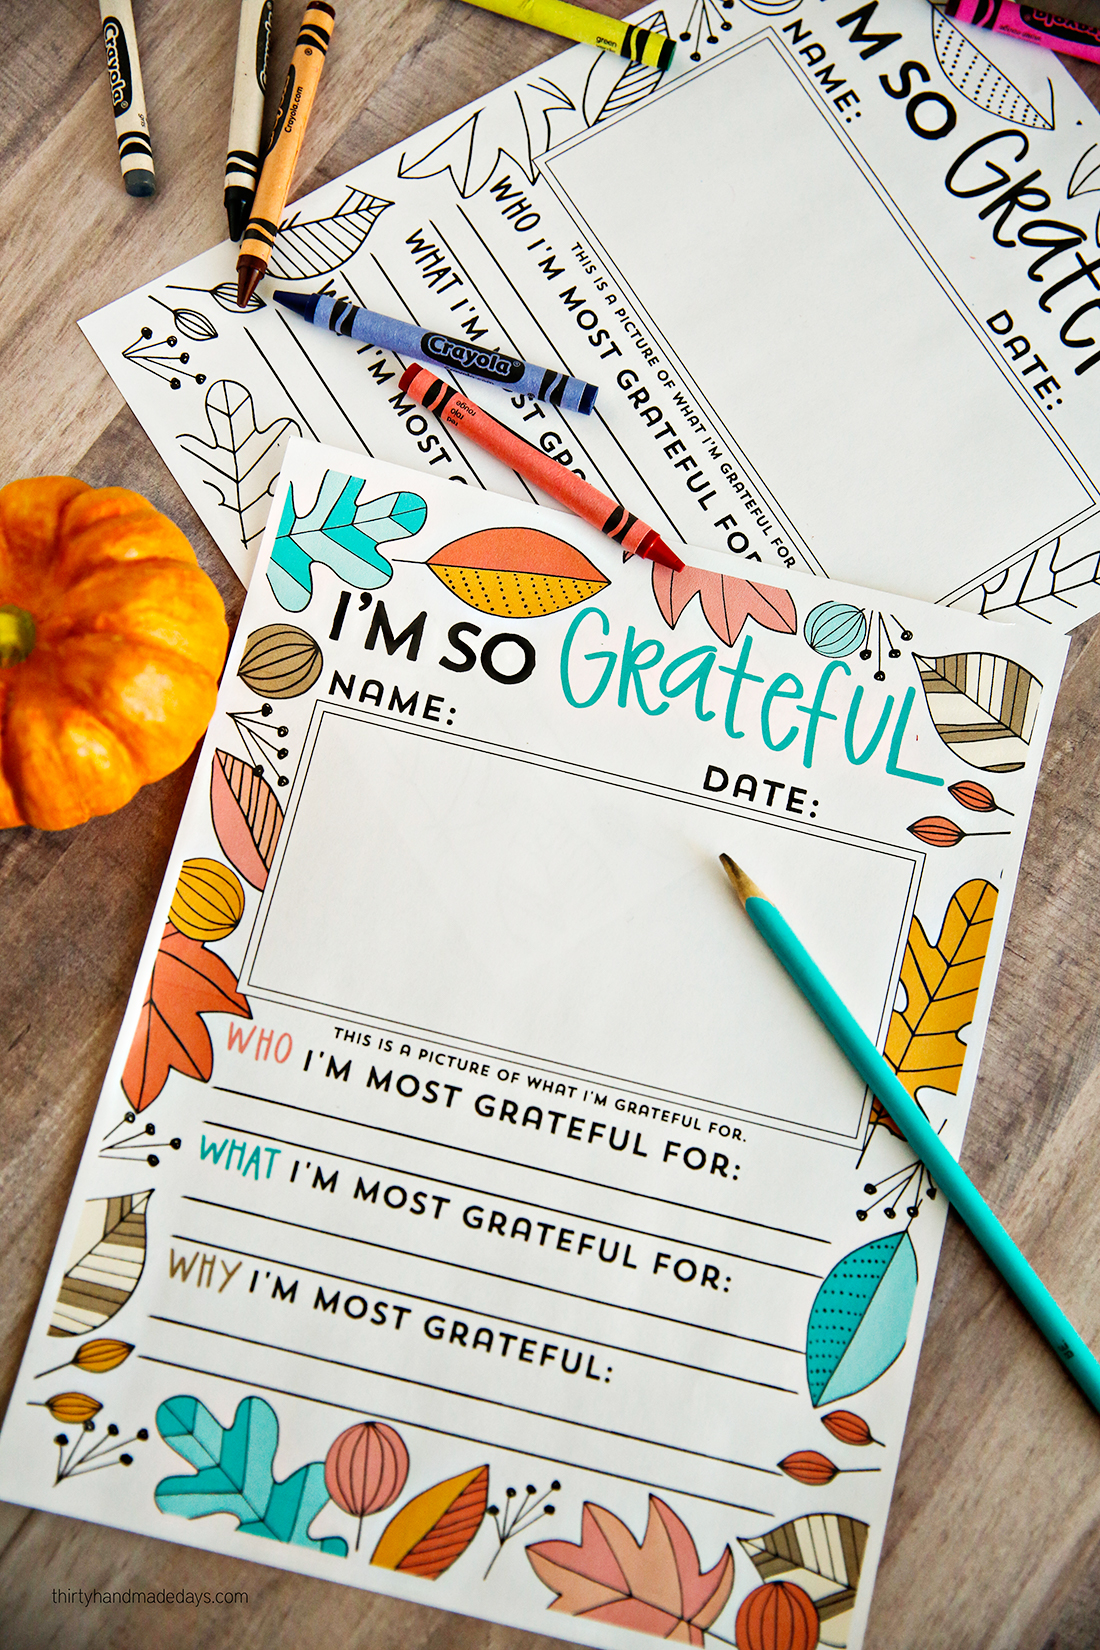 """Holidays: """"I'm so grateful for ......"""" Thanksgiving printable fill in. You can use this for kids or adults via thirtyhandmadedays.com"""